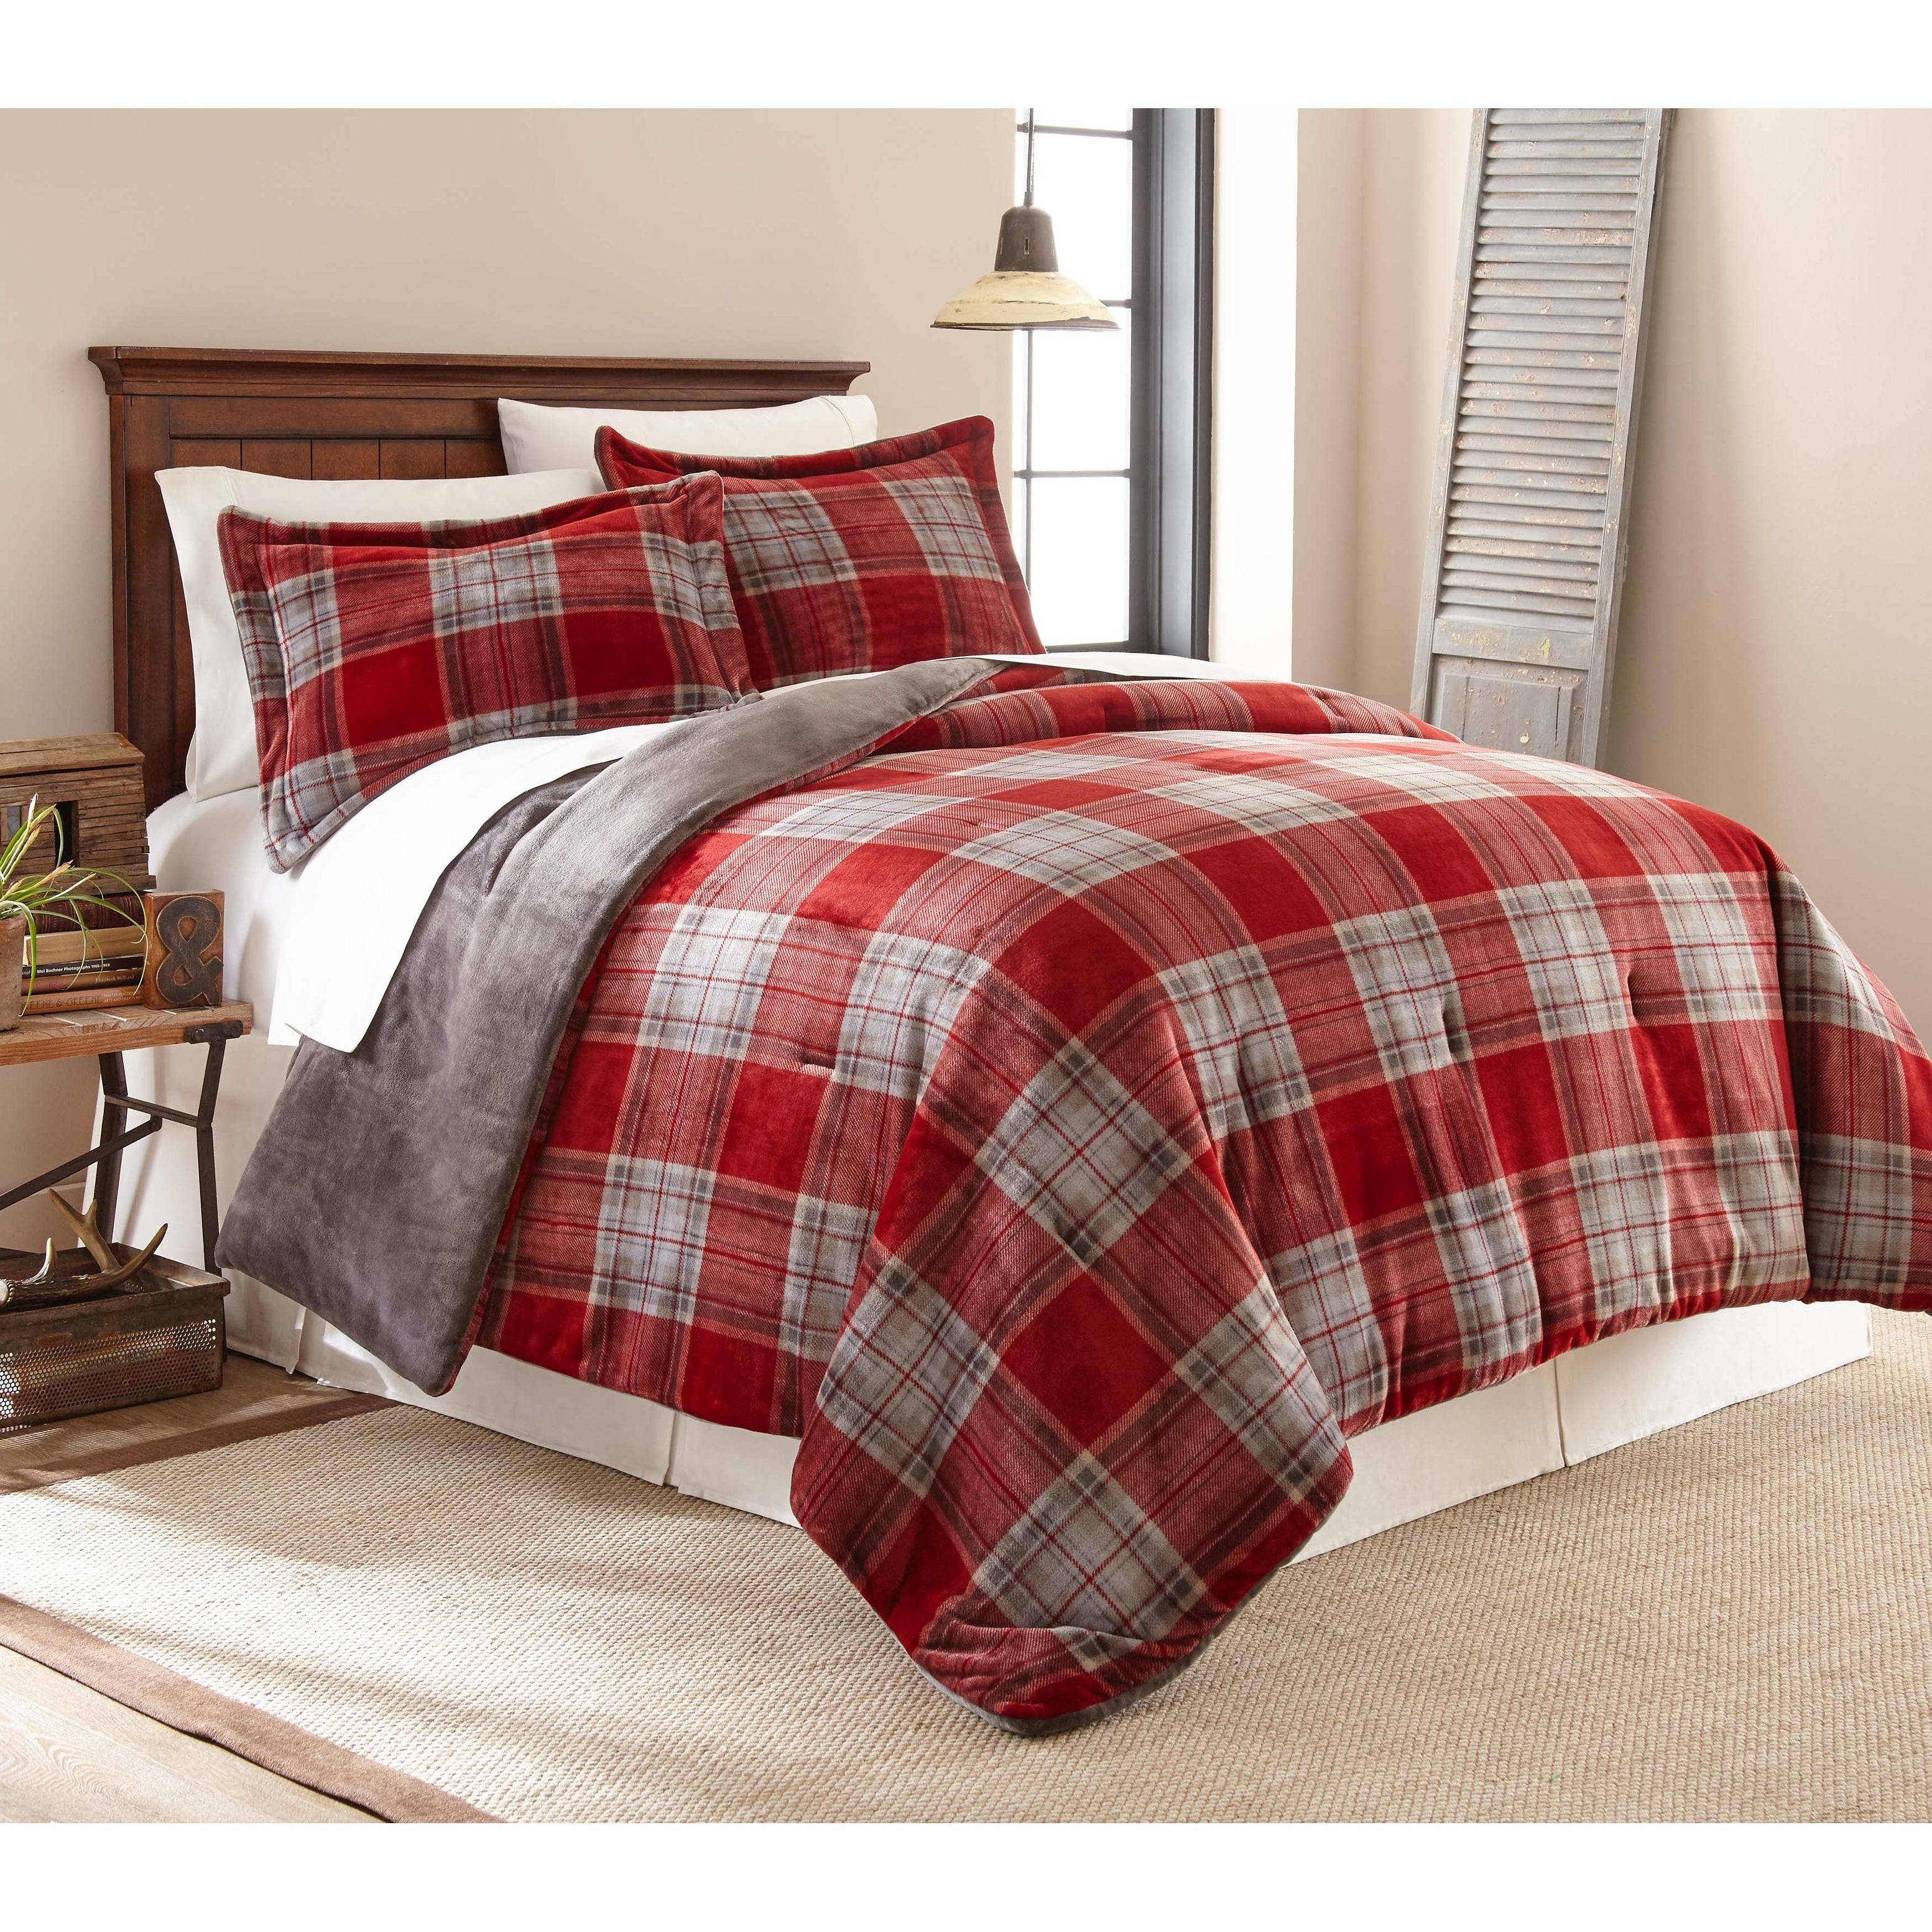 Unique solid Red Comforter Twin